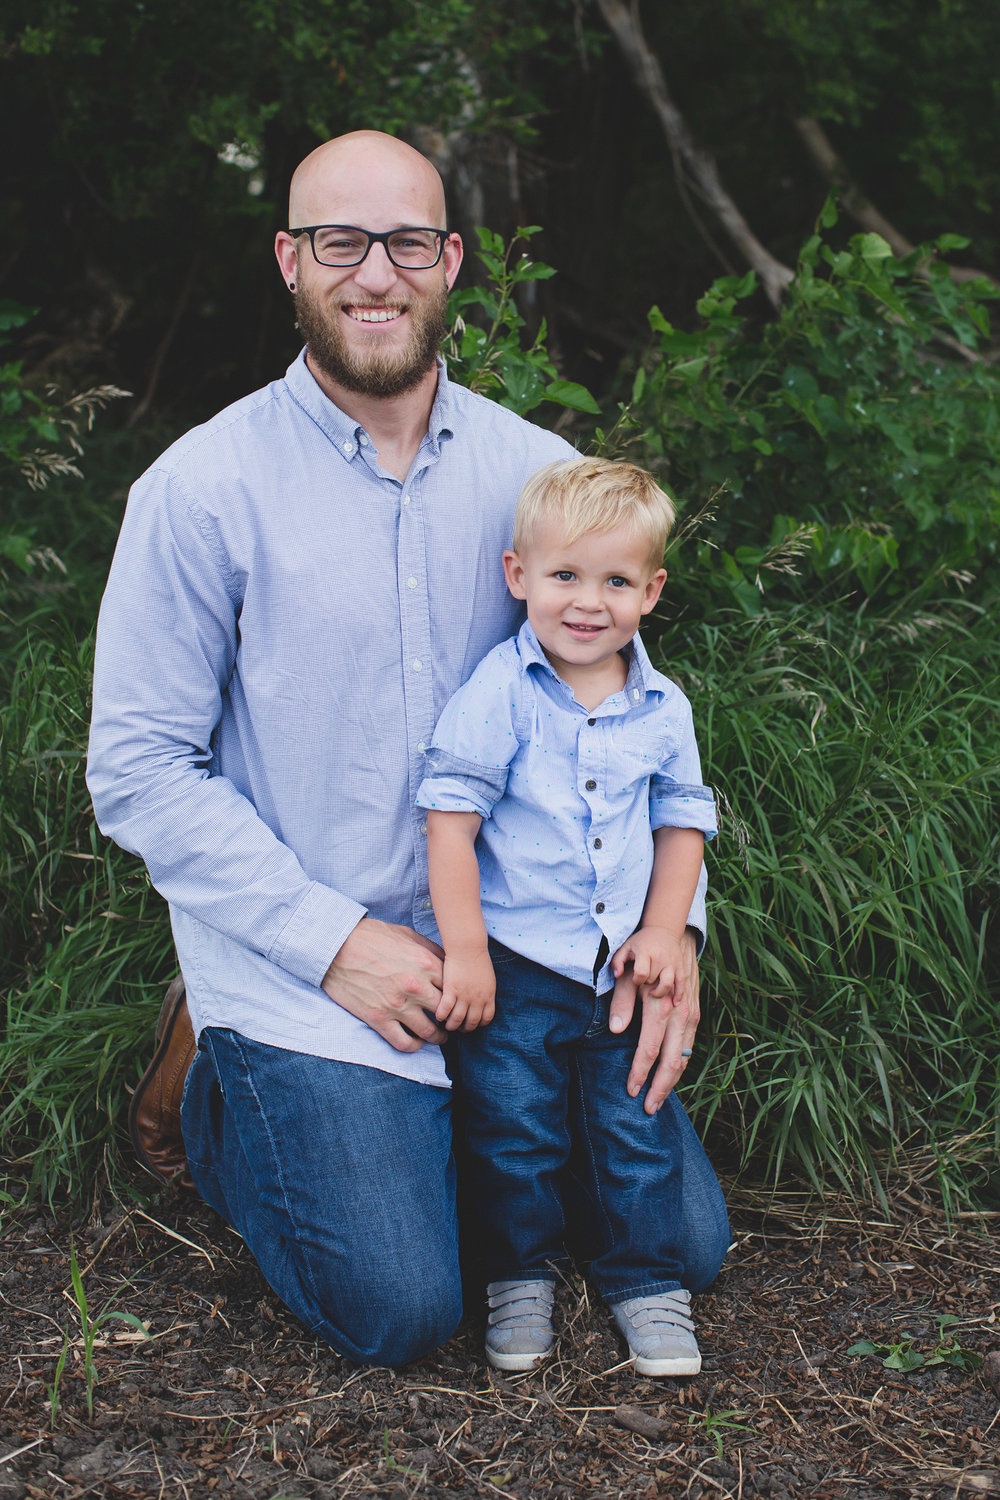 Jordan Edens Photography_Tri cities photographer_tri cities family photographer_kennewick photographer_richland photographer_travel photographer_iowa photographer_family photos_lifestyle family_child photographer_memories and moments_9